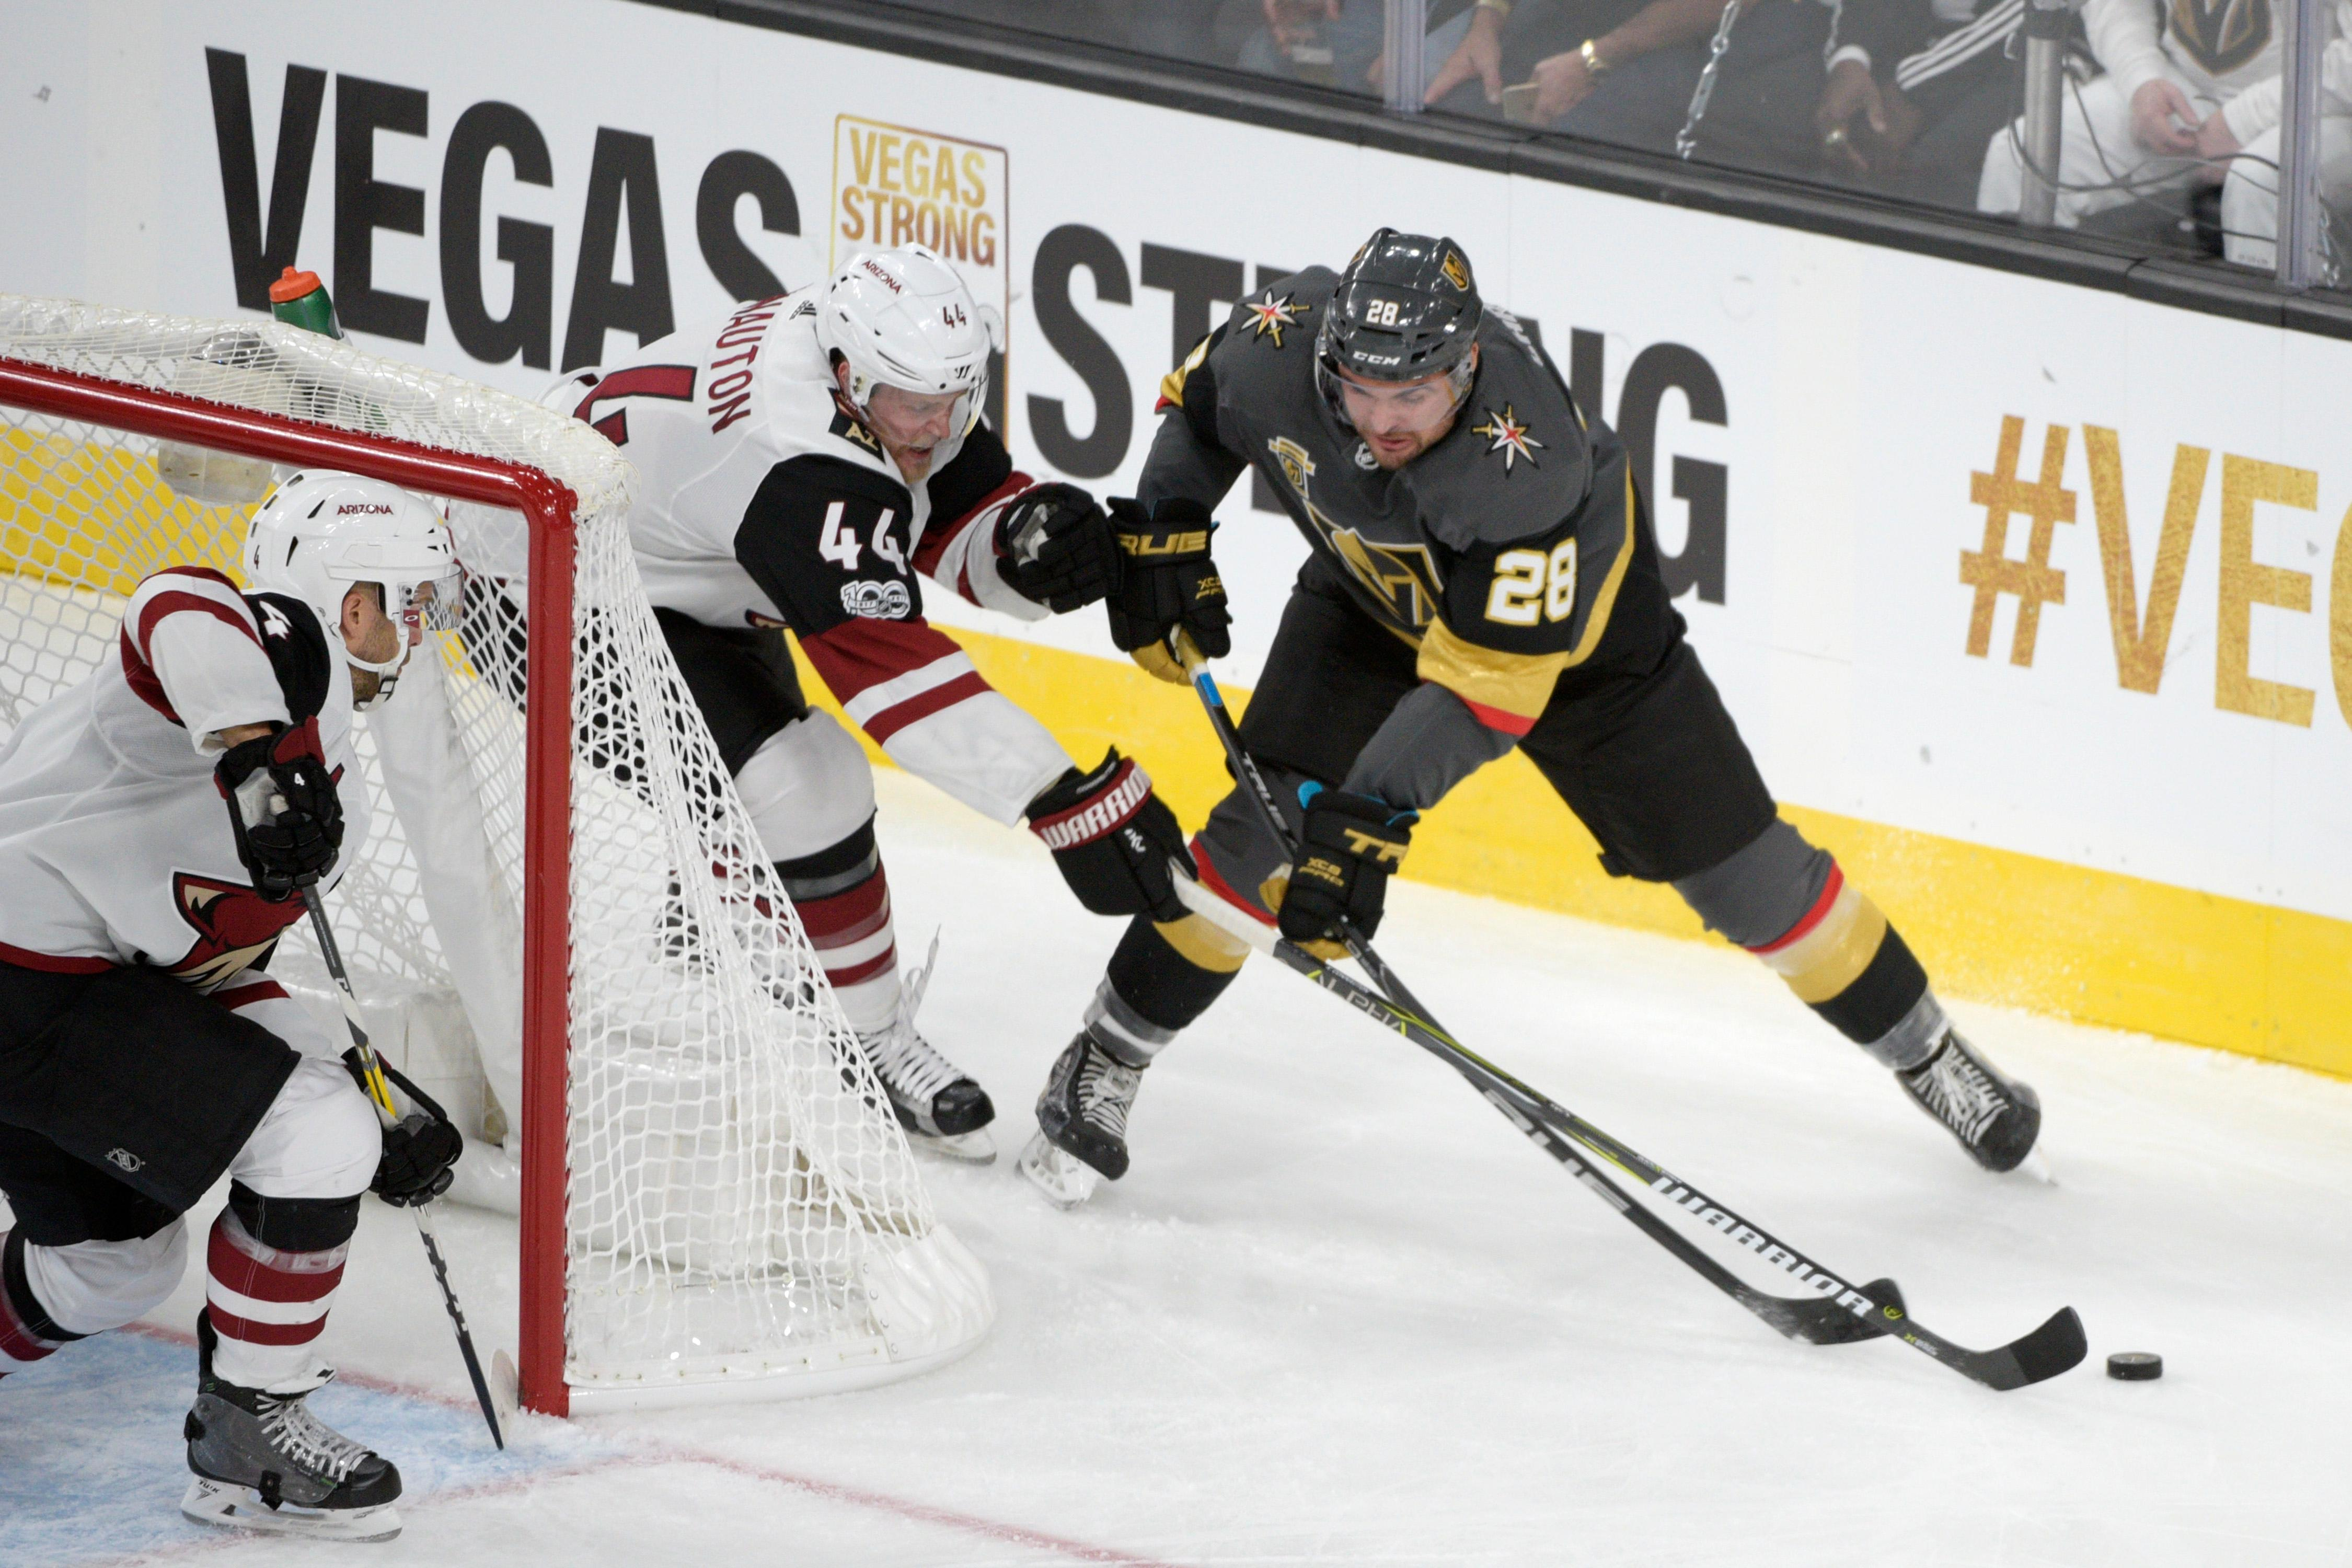 Arizona Coyotes defenseman Kevin Connauton (44) tries to keep the puck away from Vegas Golden Knights right wing William Carrier (28) during the Knights home opener Tuesday, Oct. 10, 2017, at the T-Mobile Arena. The Knights won 5-2 to extend their winning streak to 3-0. CREDIT: Sam Morris/Las Vegas News Bureau